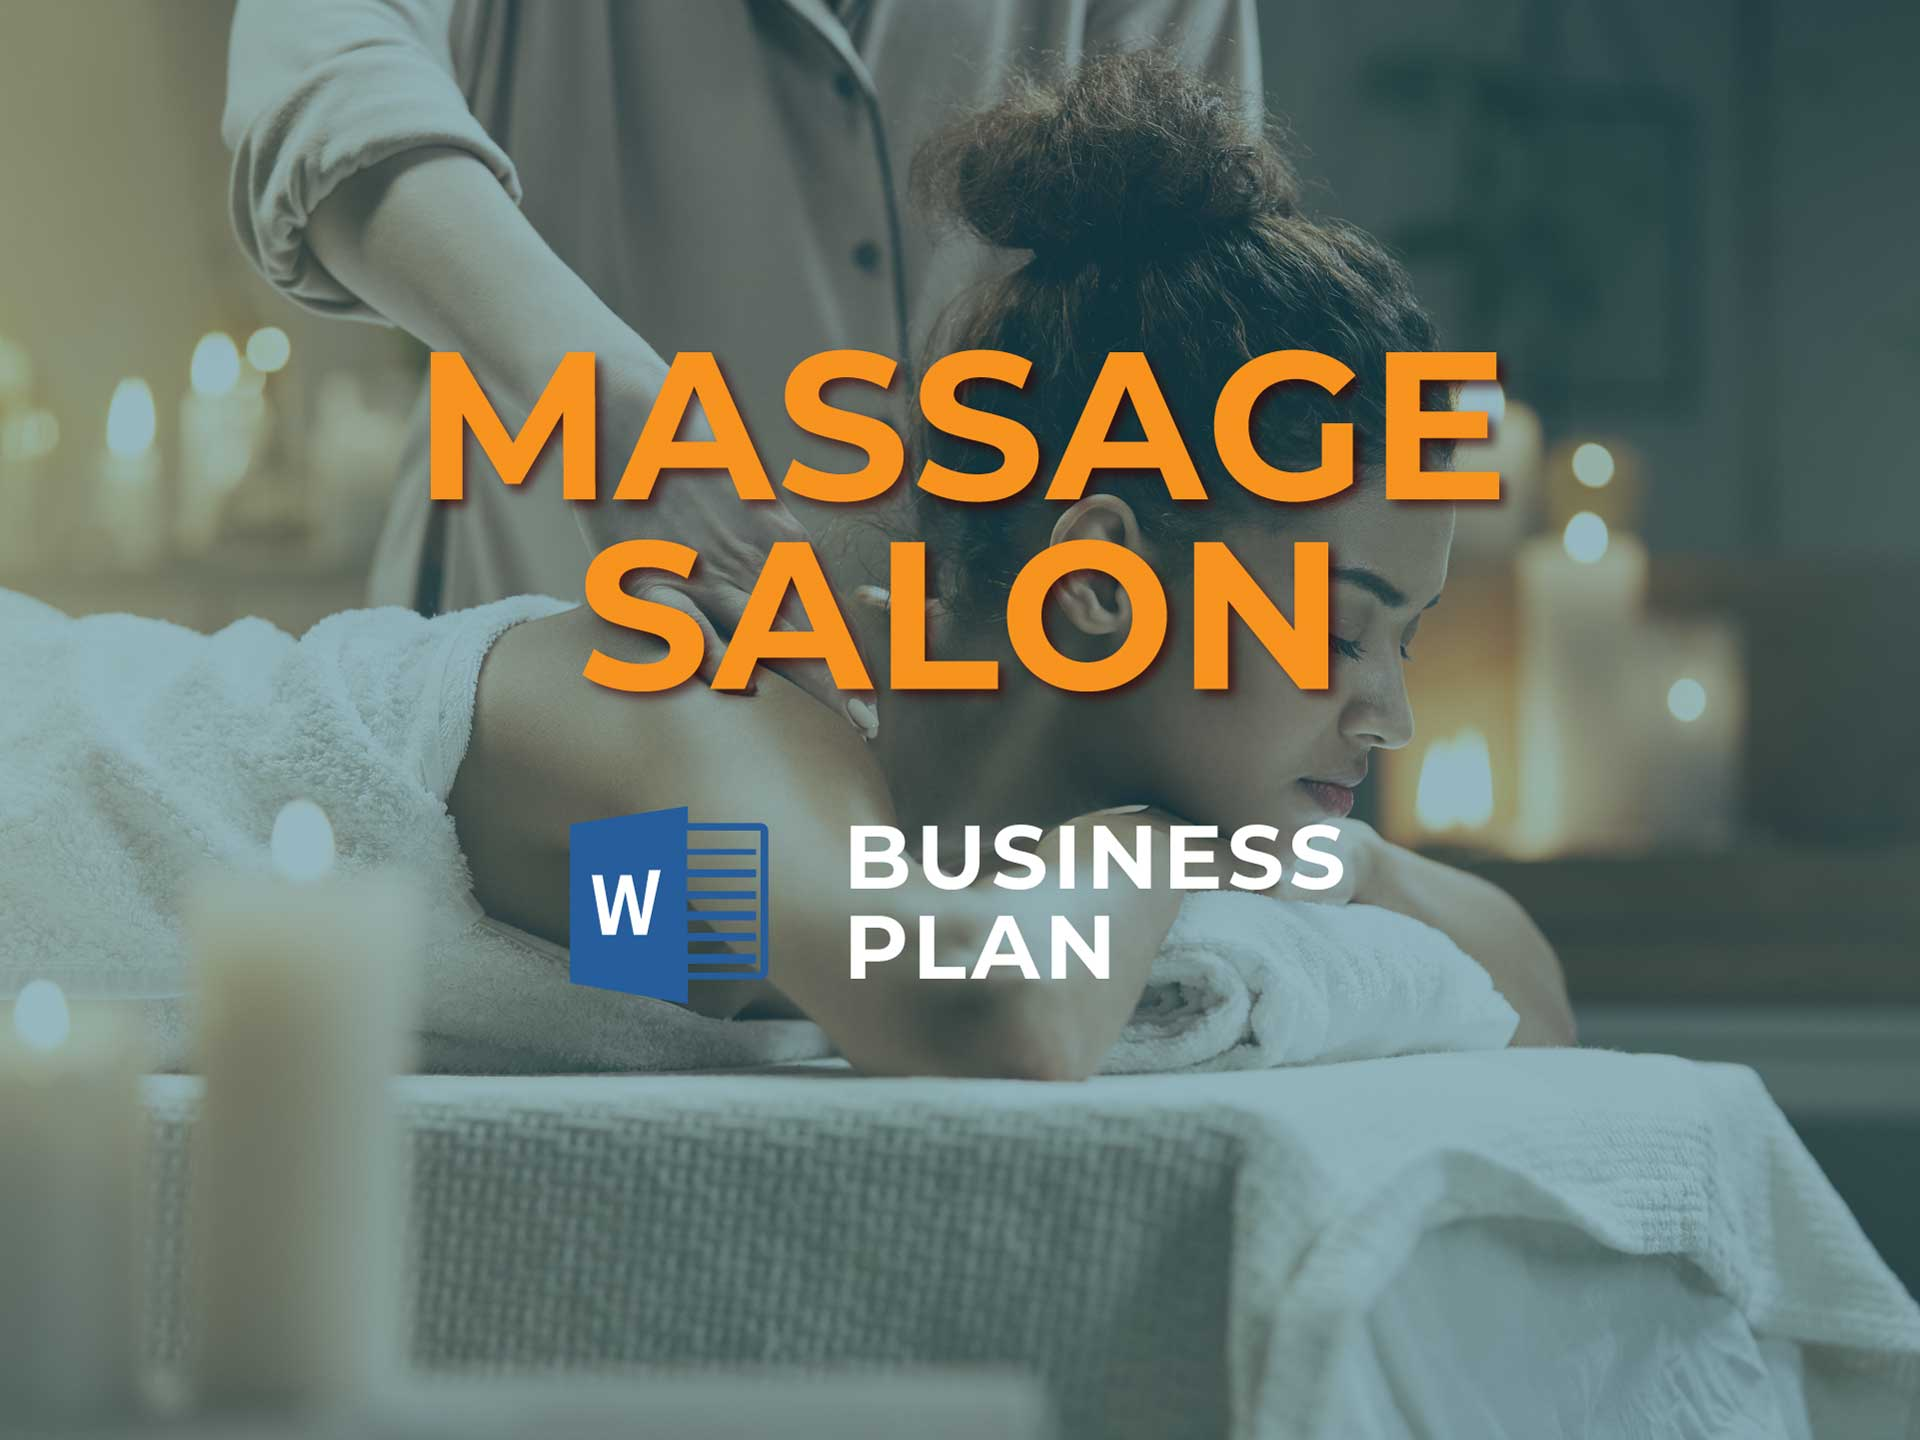 Massage Salon